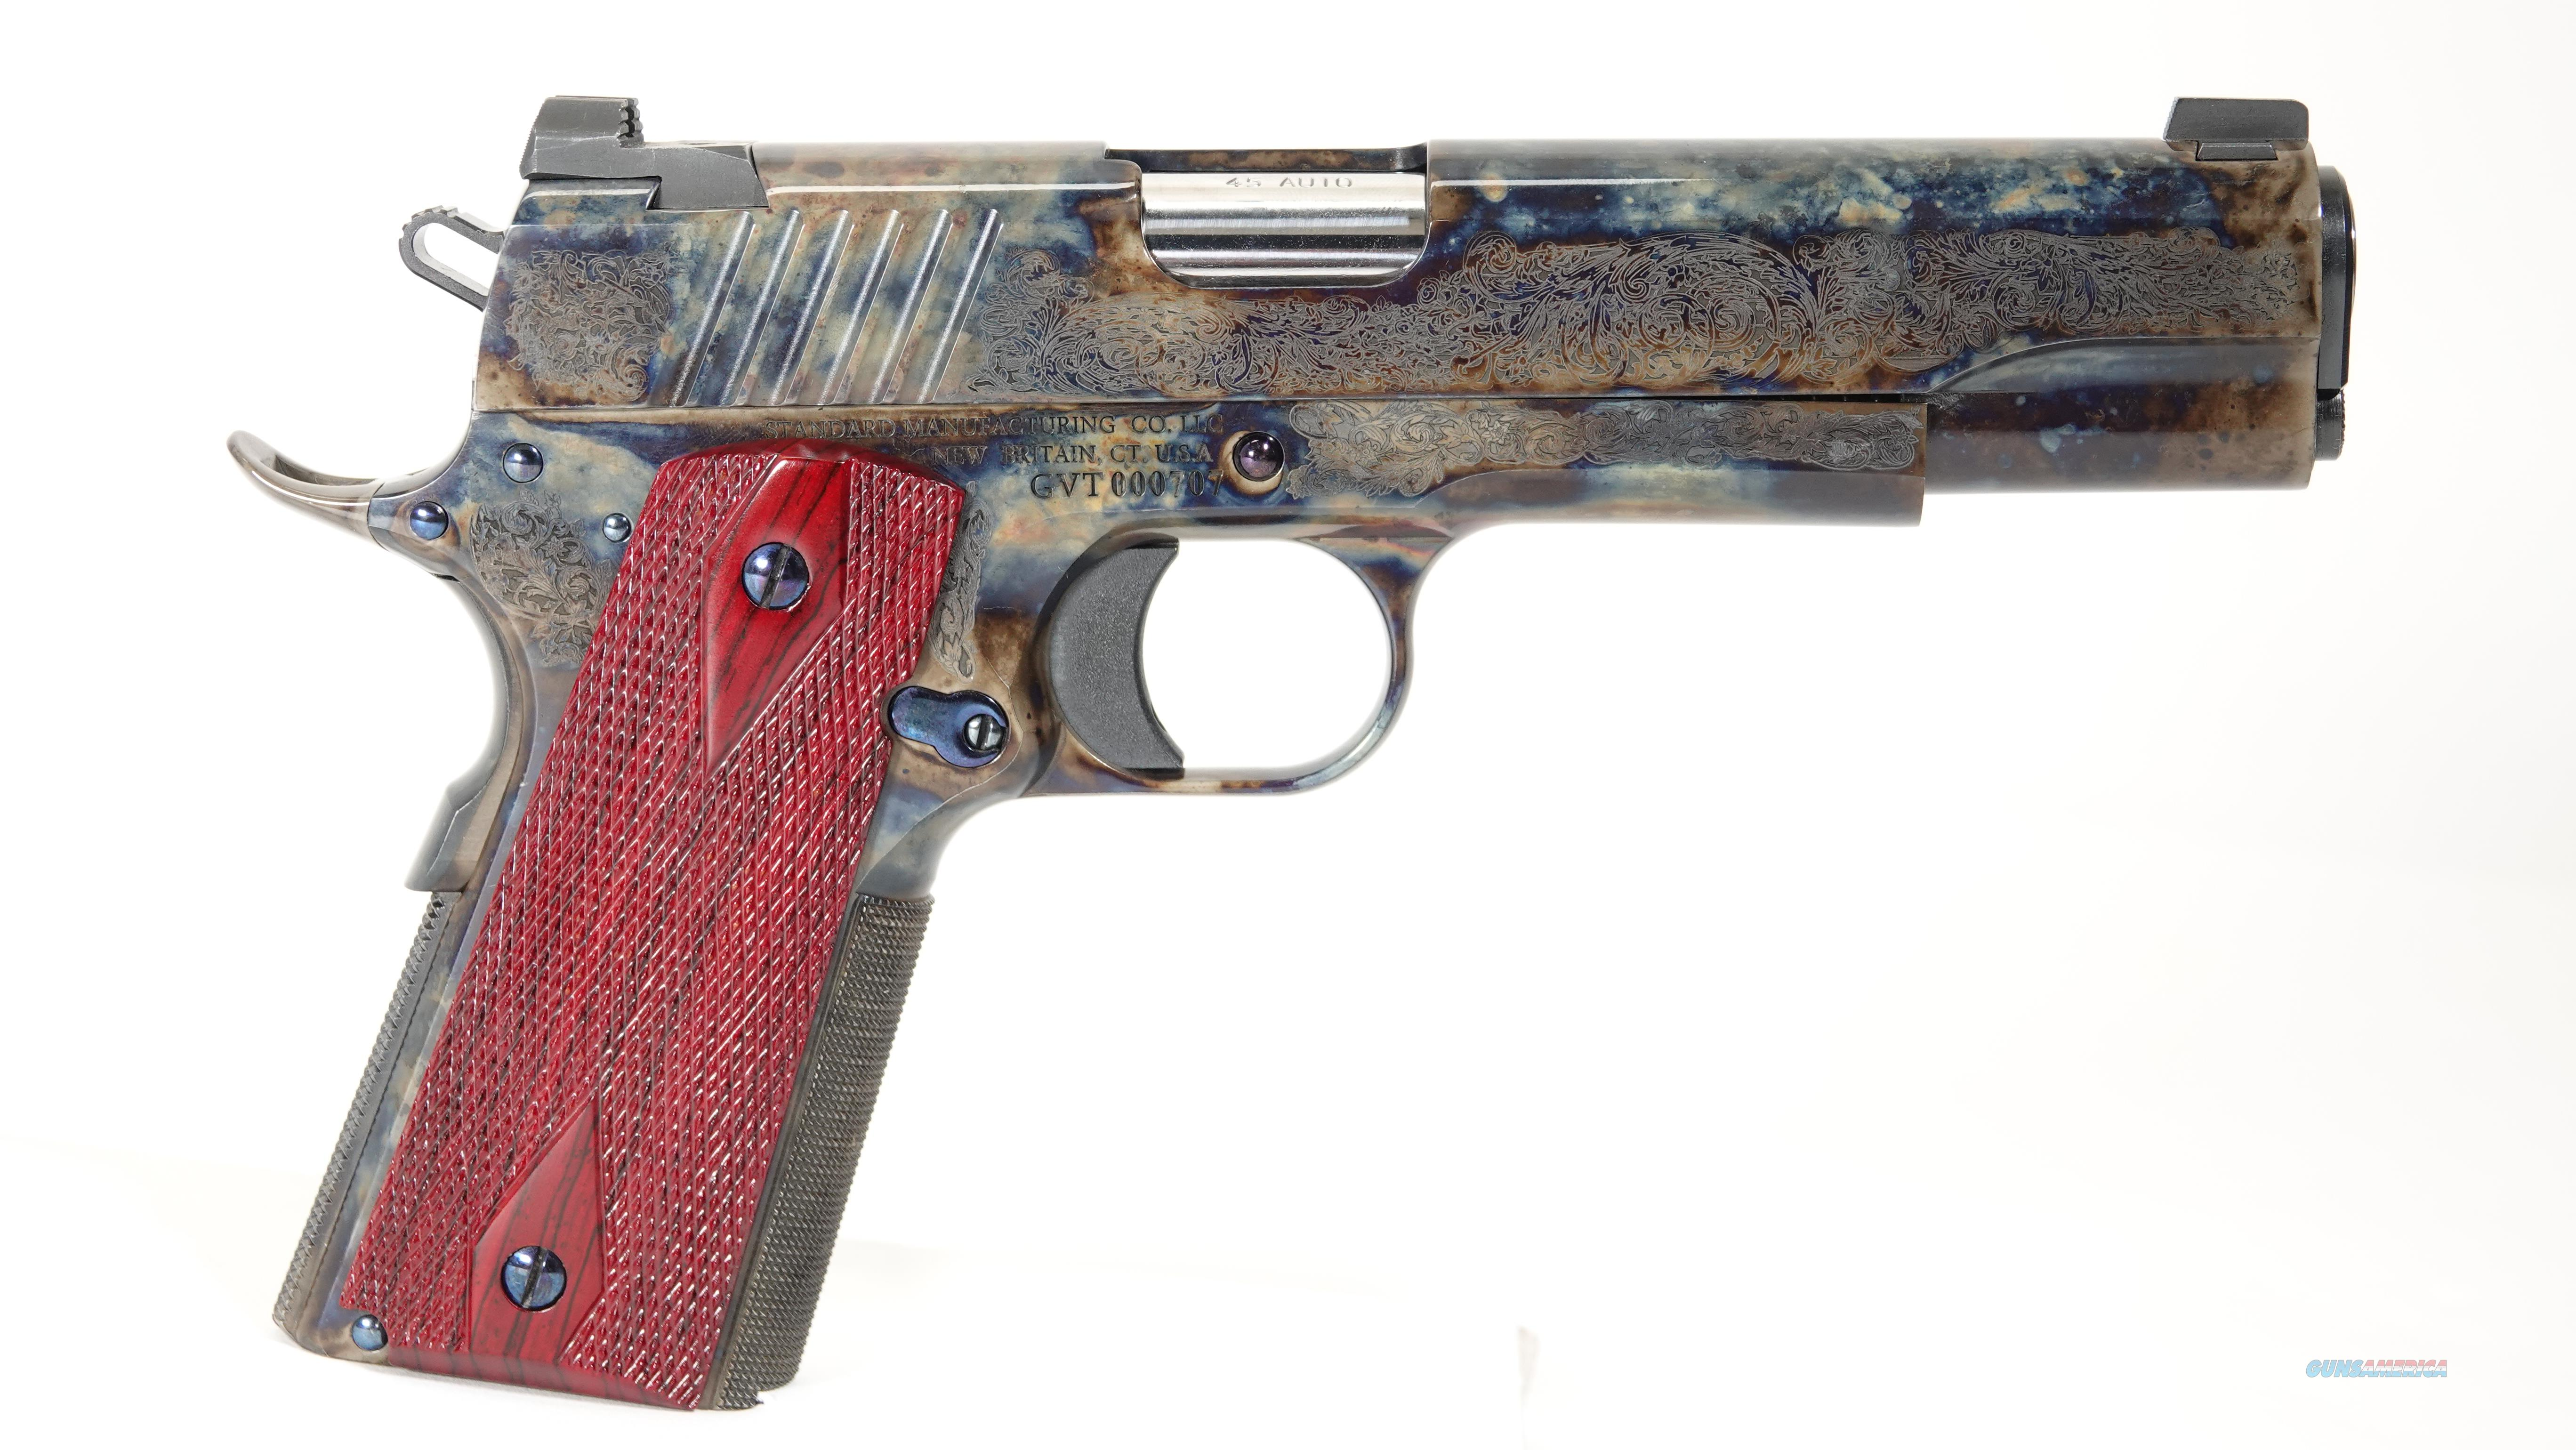 1911, 45 ACP,Case Colored #1 Engraved, by Standard Manufacturing Company   Guns > Pistols > Standard Mfg. Pistols